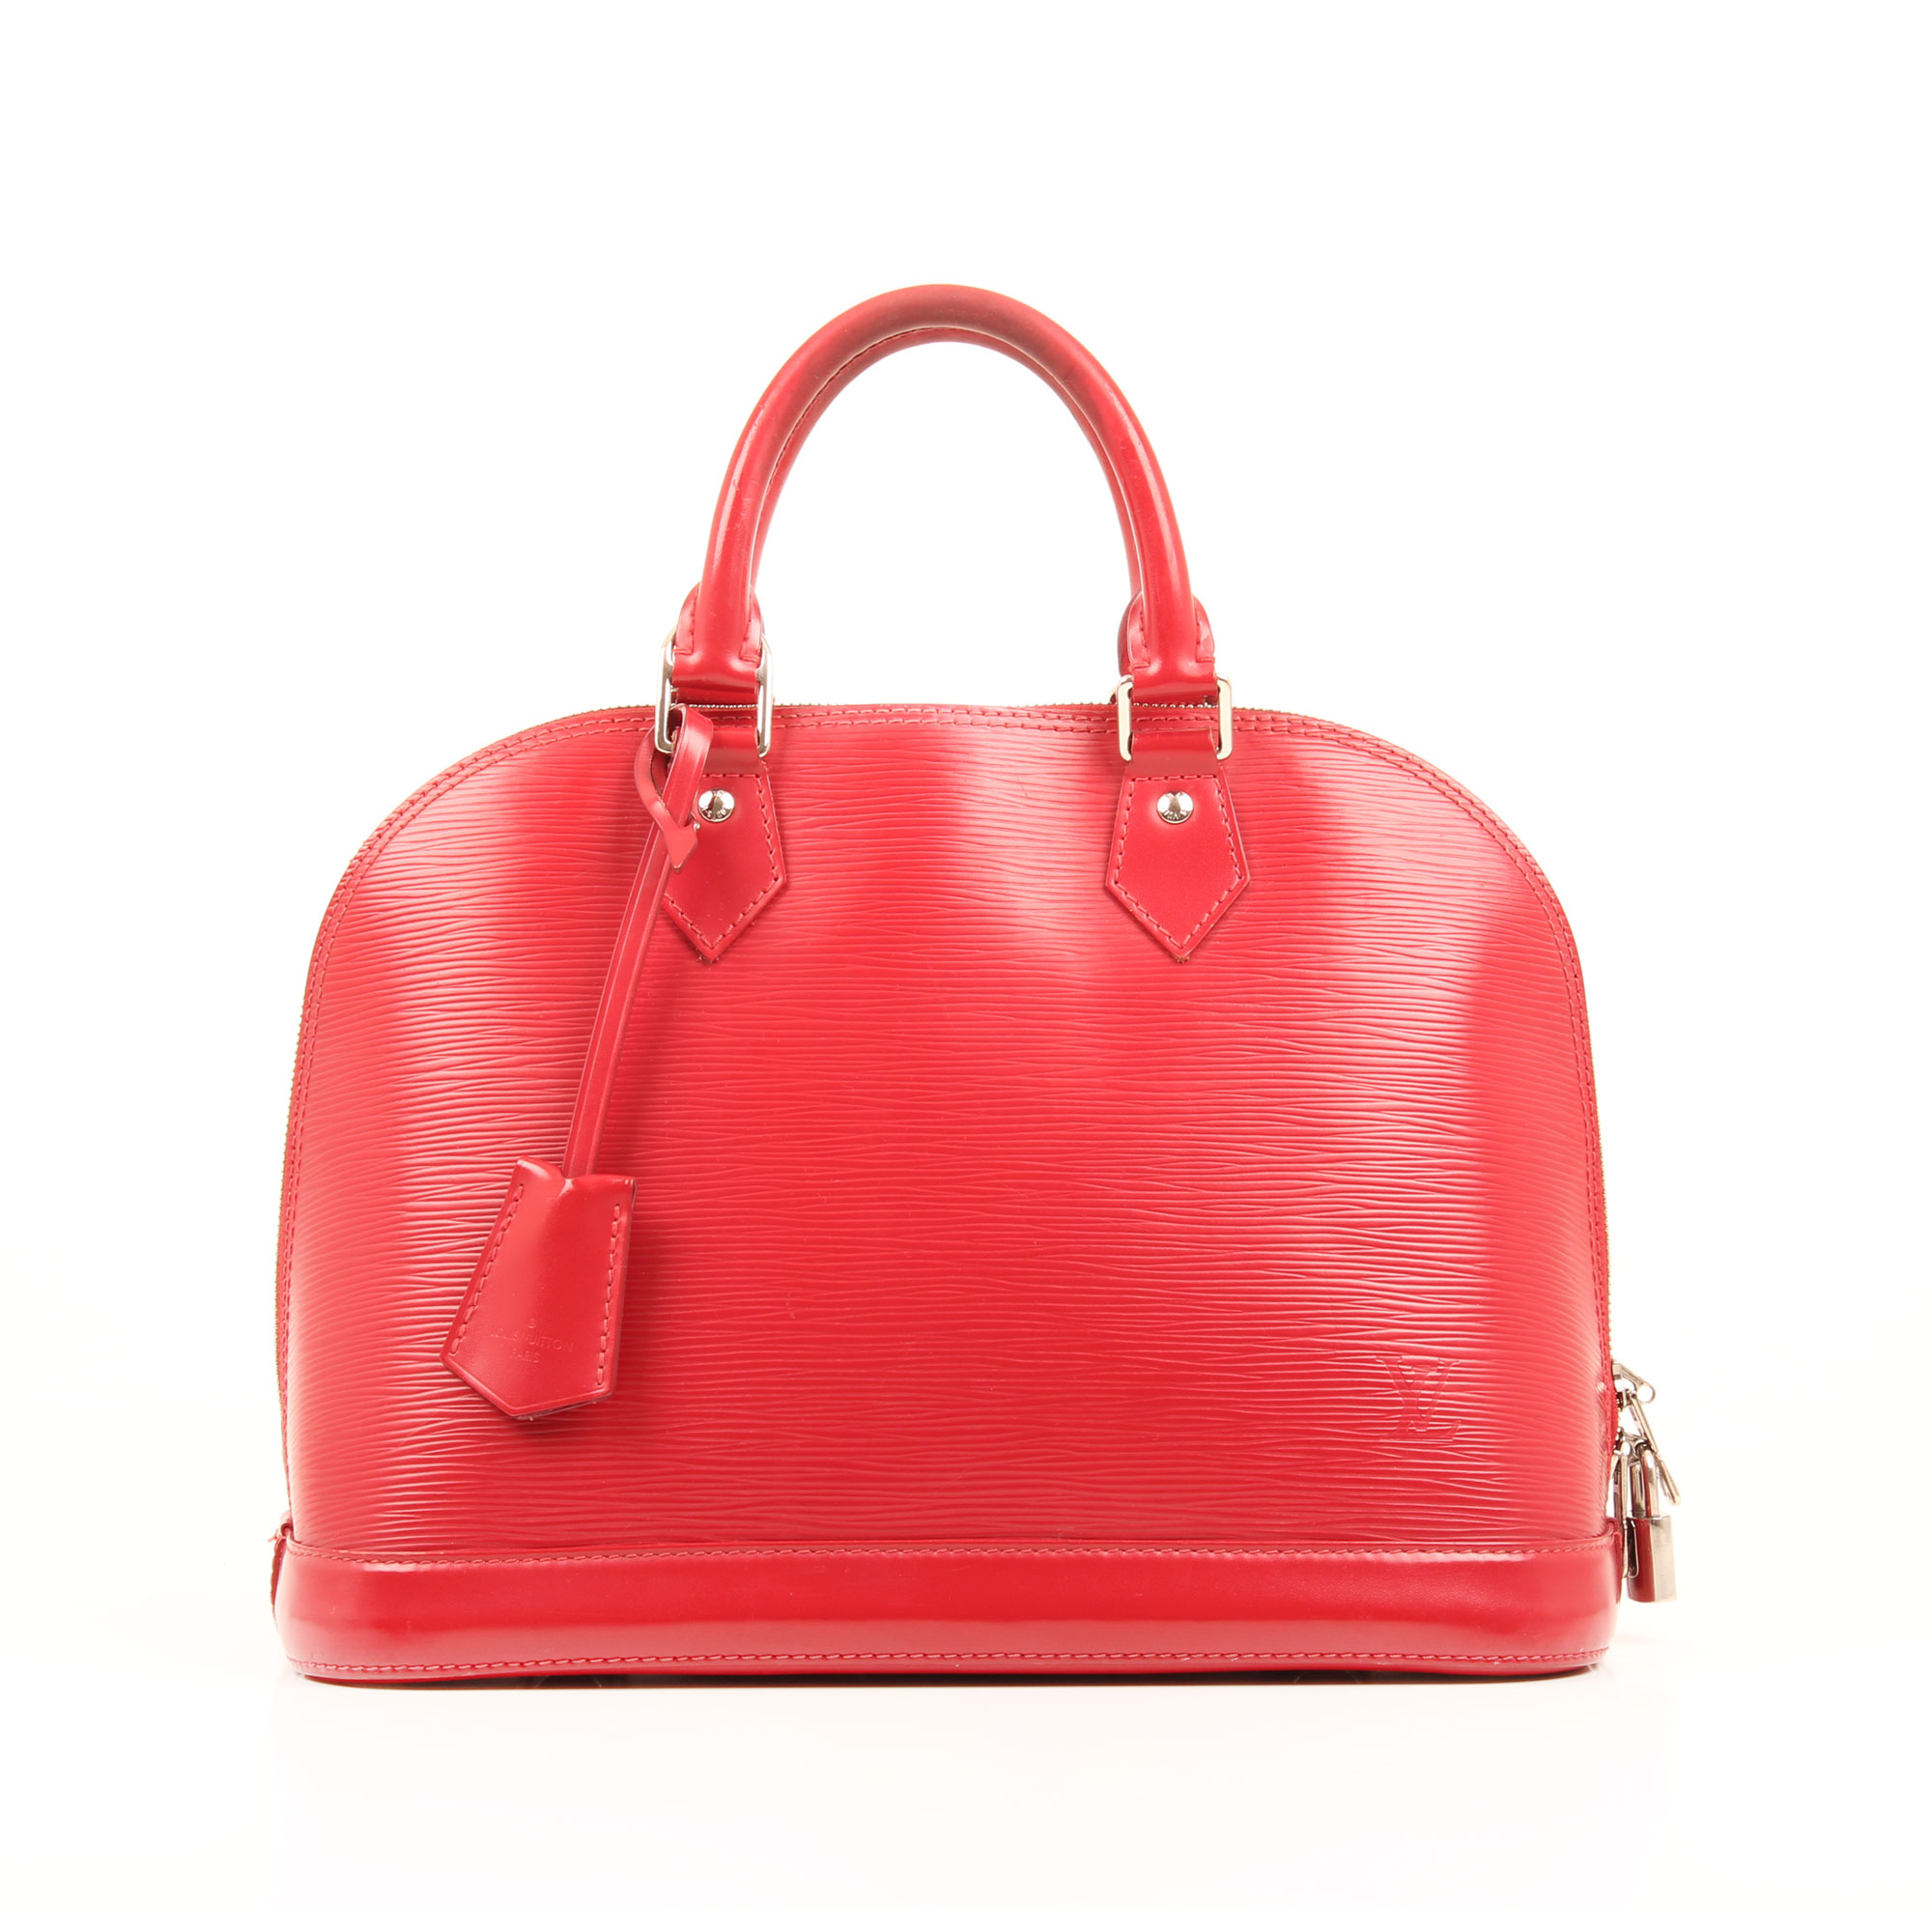 handbag louis vuitton alma pm red epi front